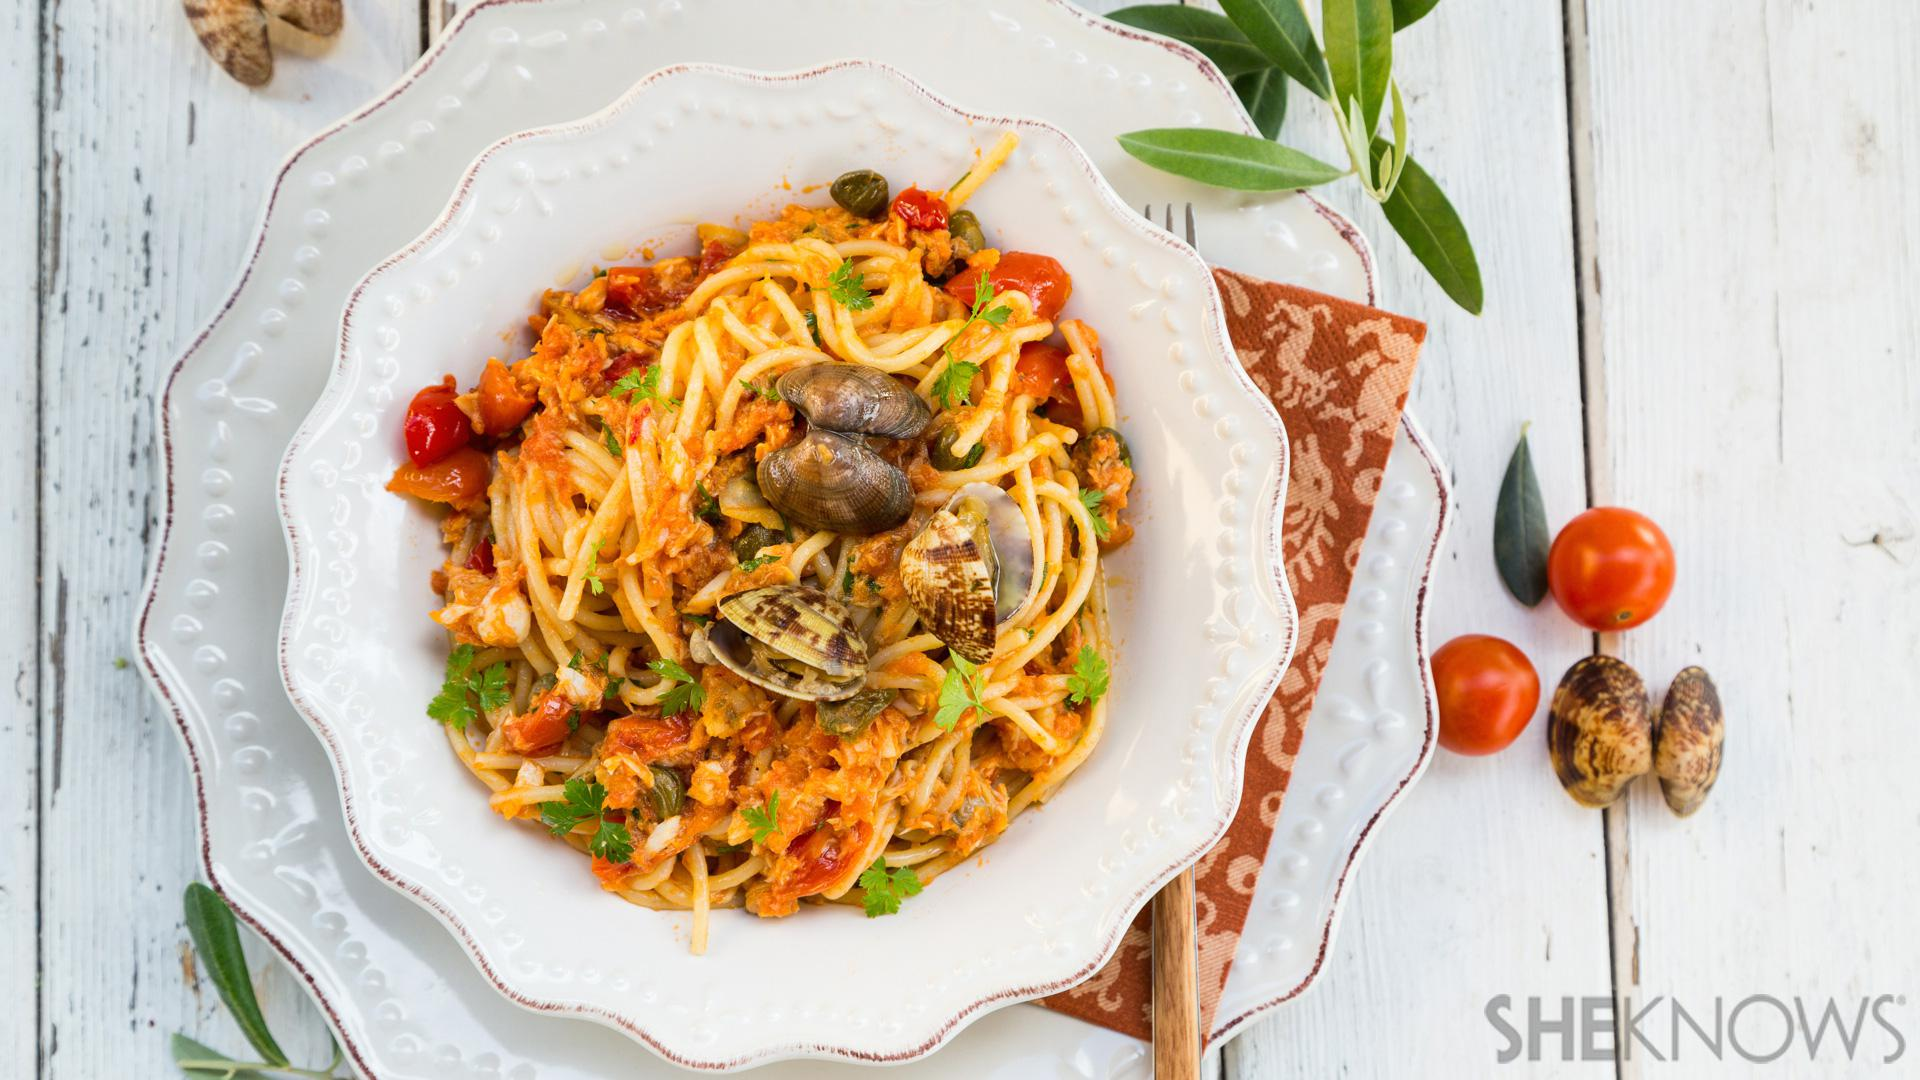 Clams Shrimp And Fish Make For A Spectacular Spaghetti With Seafood